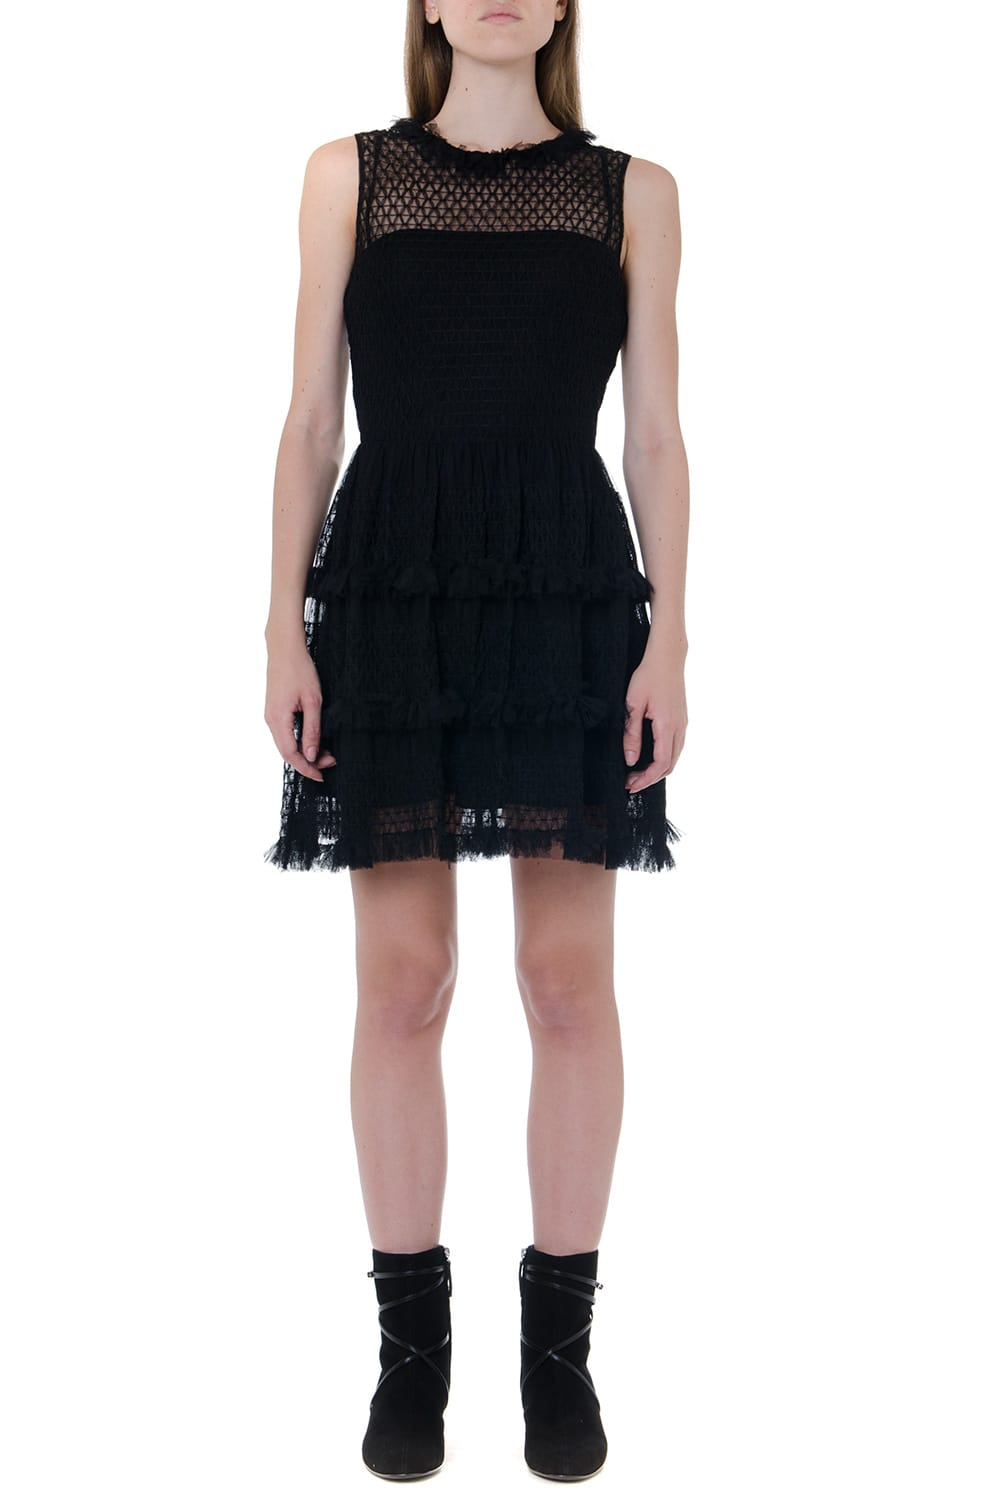 RED Valentino Black Frilled Mini Dress